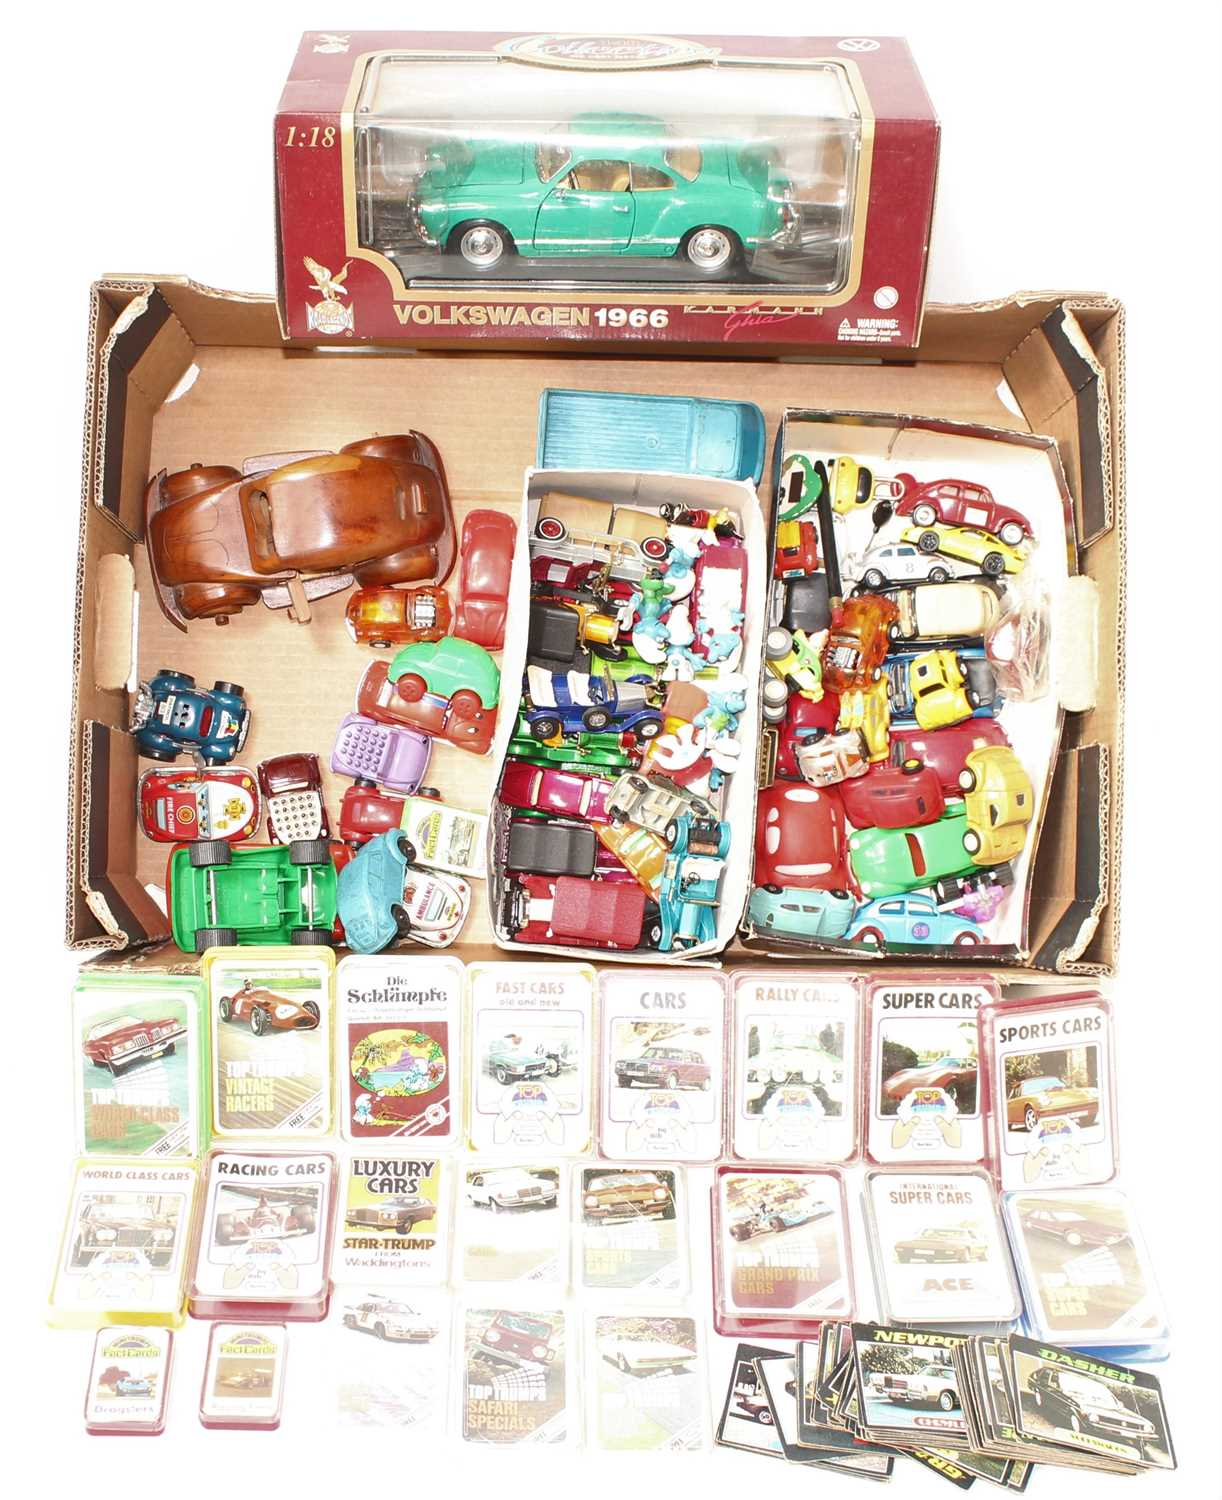 One tray containing a quantity of mixed plastic tinplate and diecast VW related collectables,